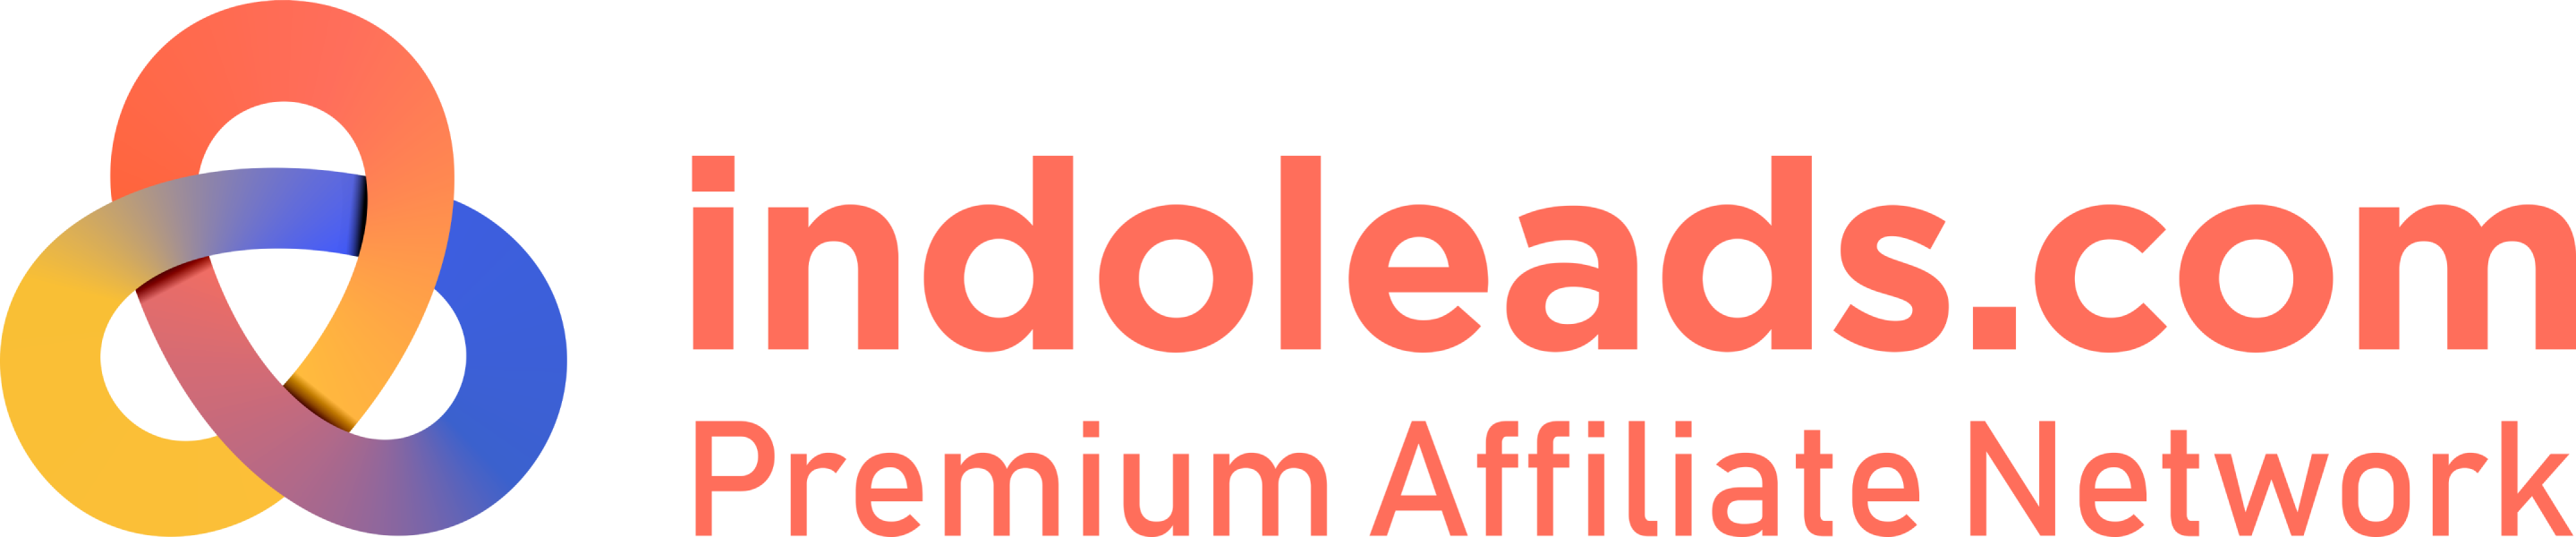 Indoleads.com - Premium Affiliate network login logo